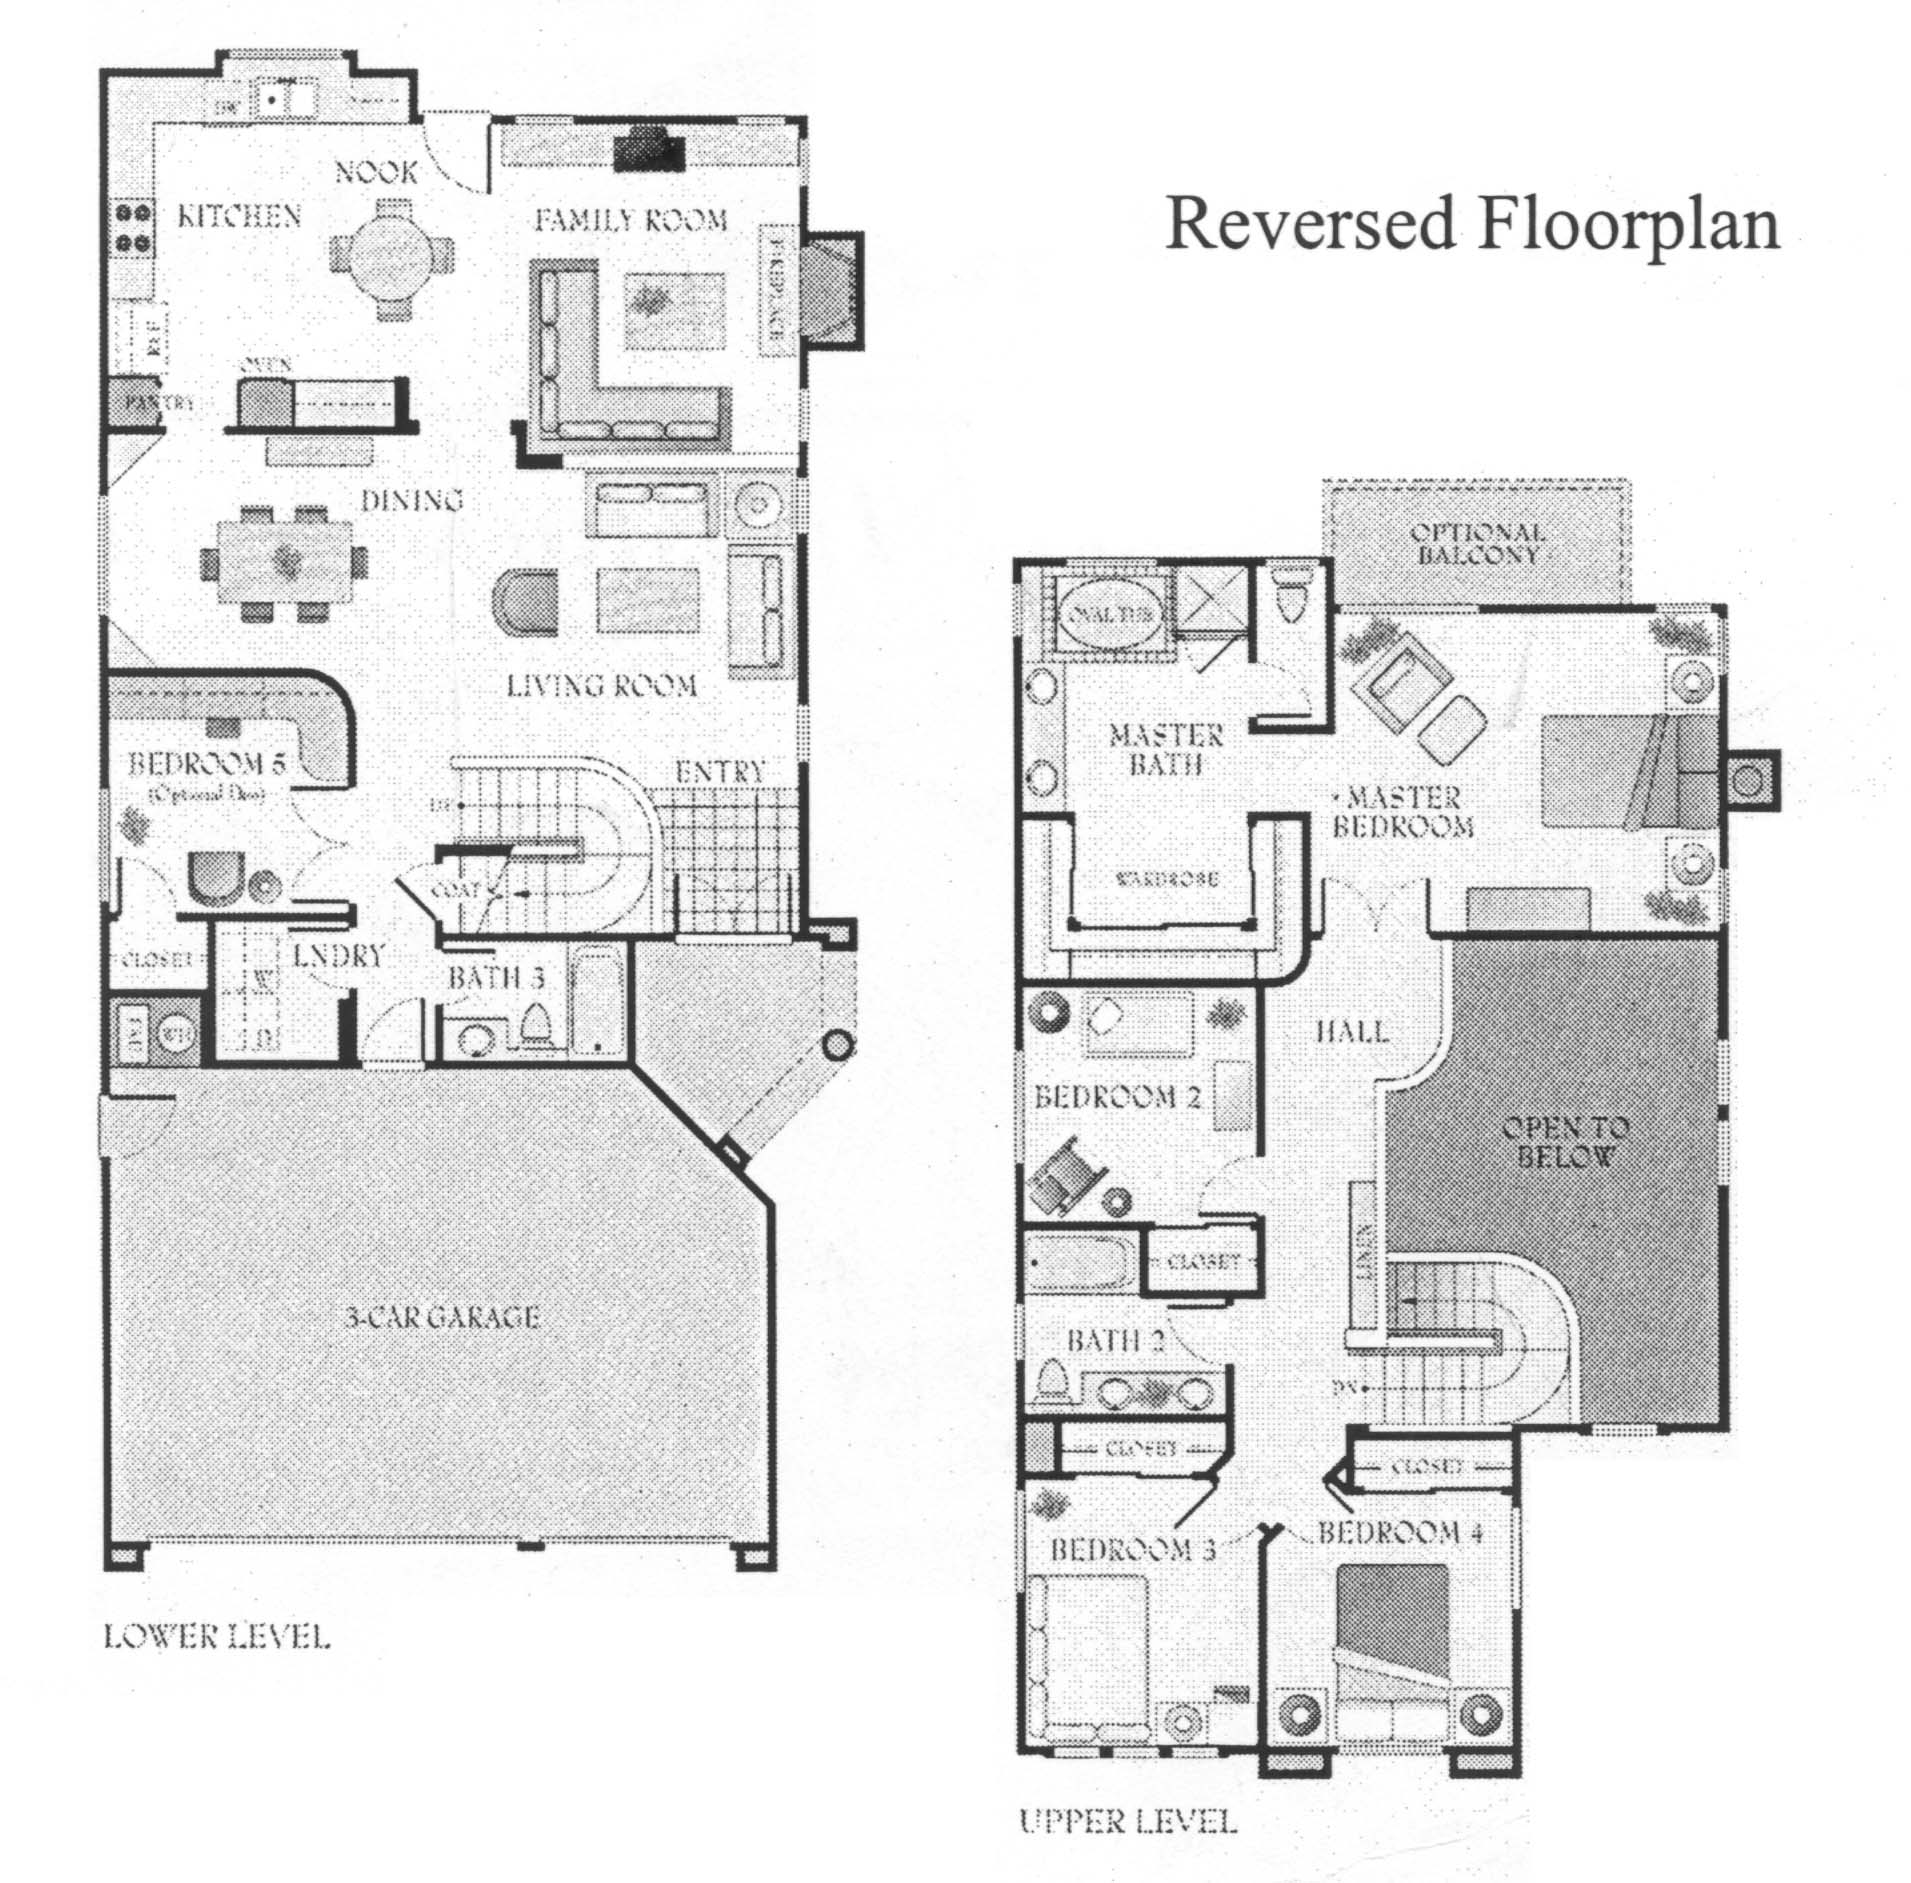 Master bath floor plans best layout room for Bathroom designs plans layouts